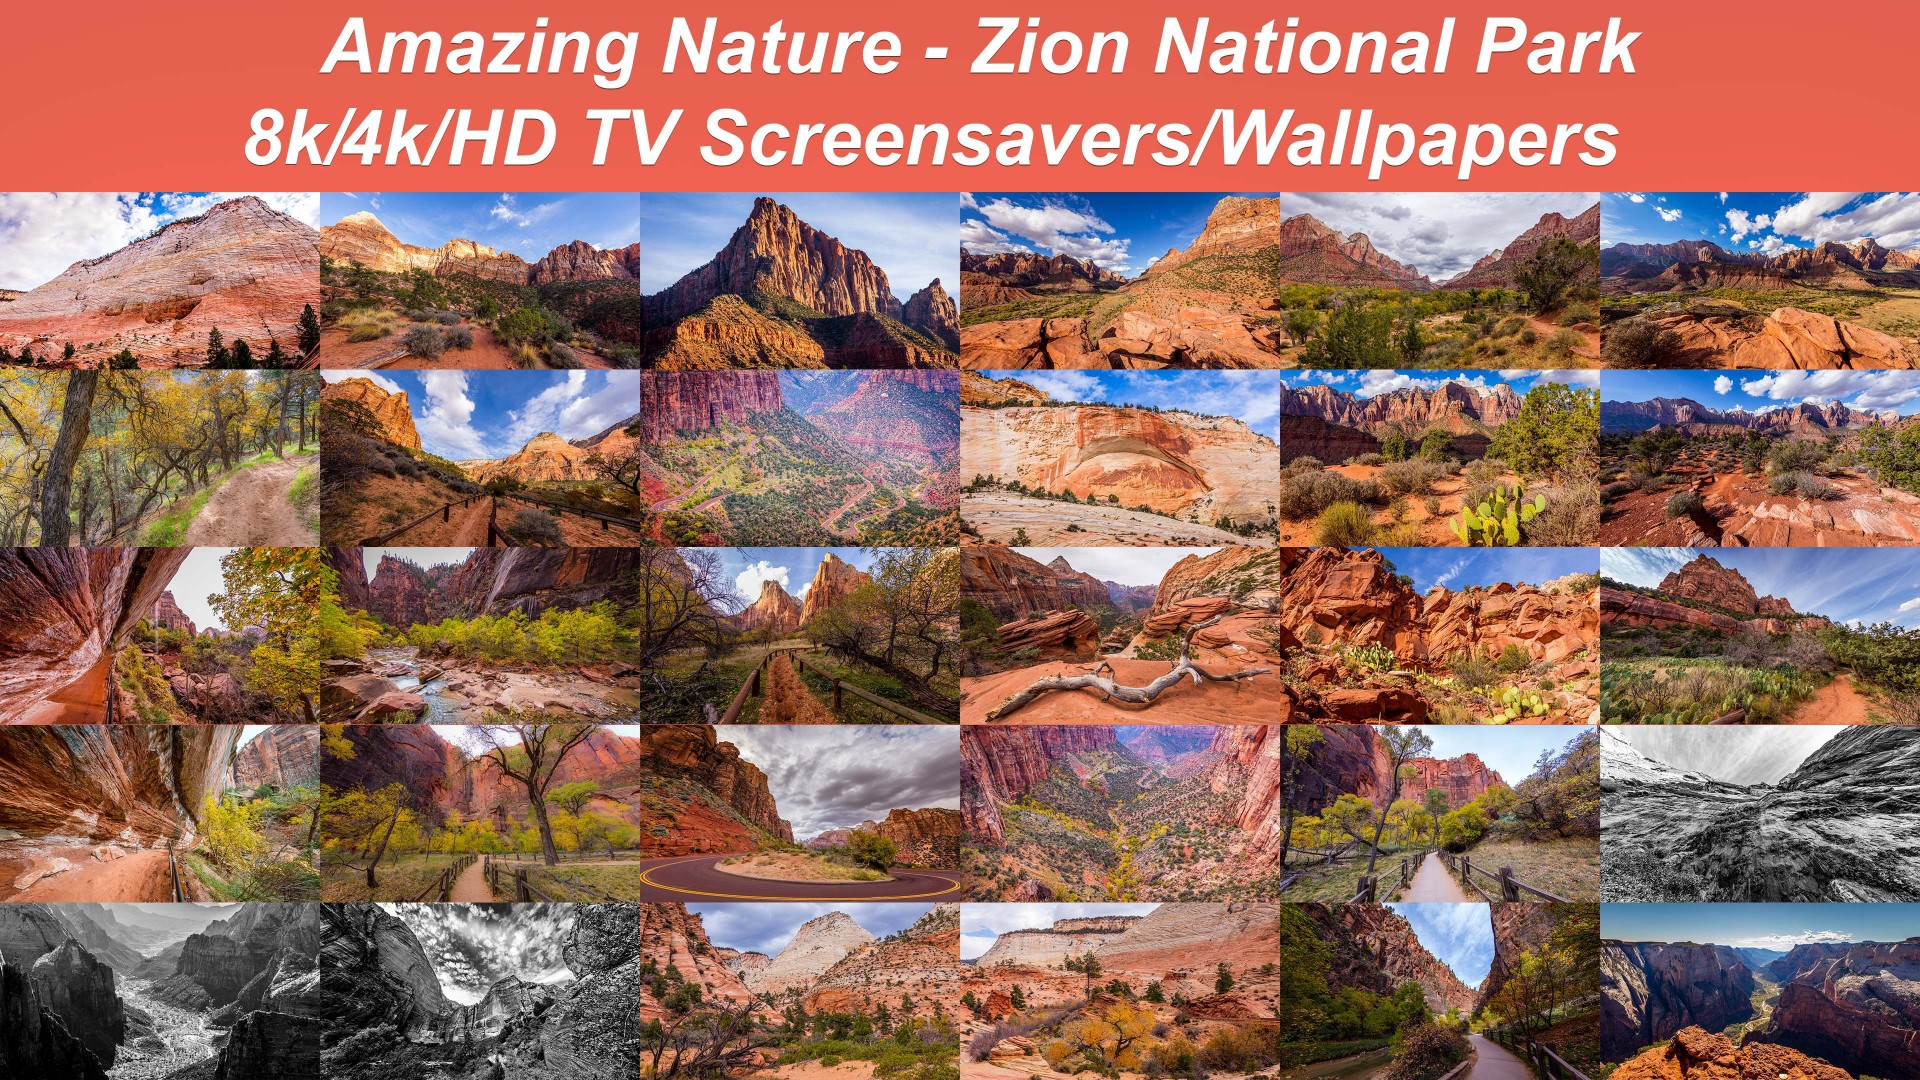 Amazing Nature: Zion National Park u2013 8K/4K/HD TV Screensavers/Wallpapers